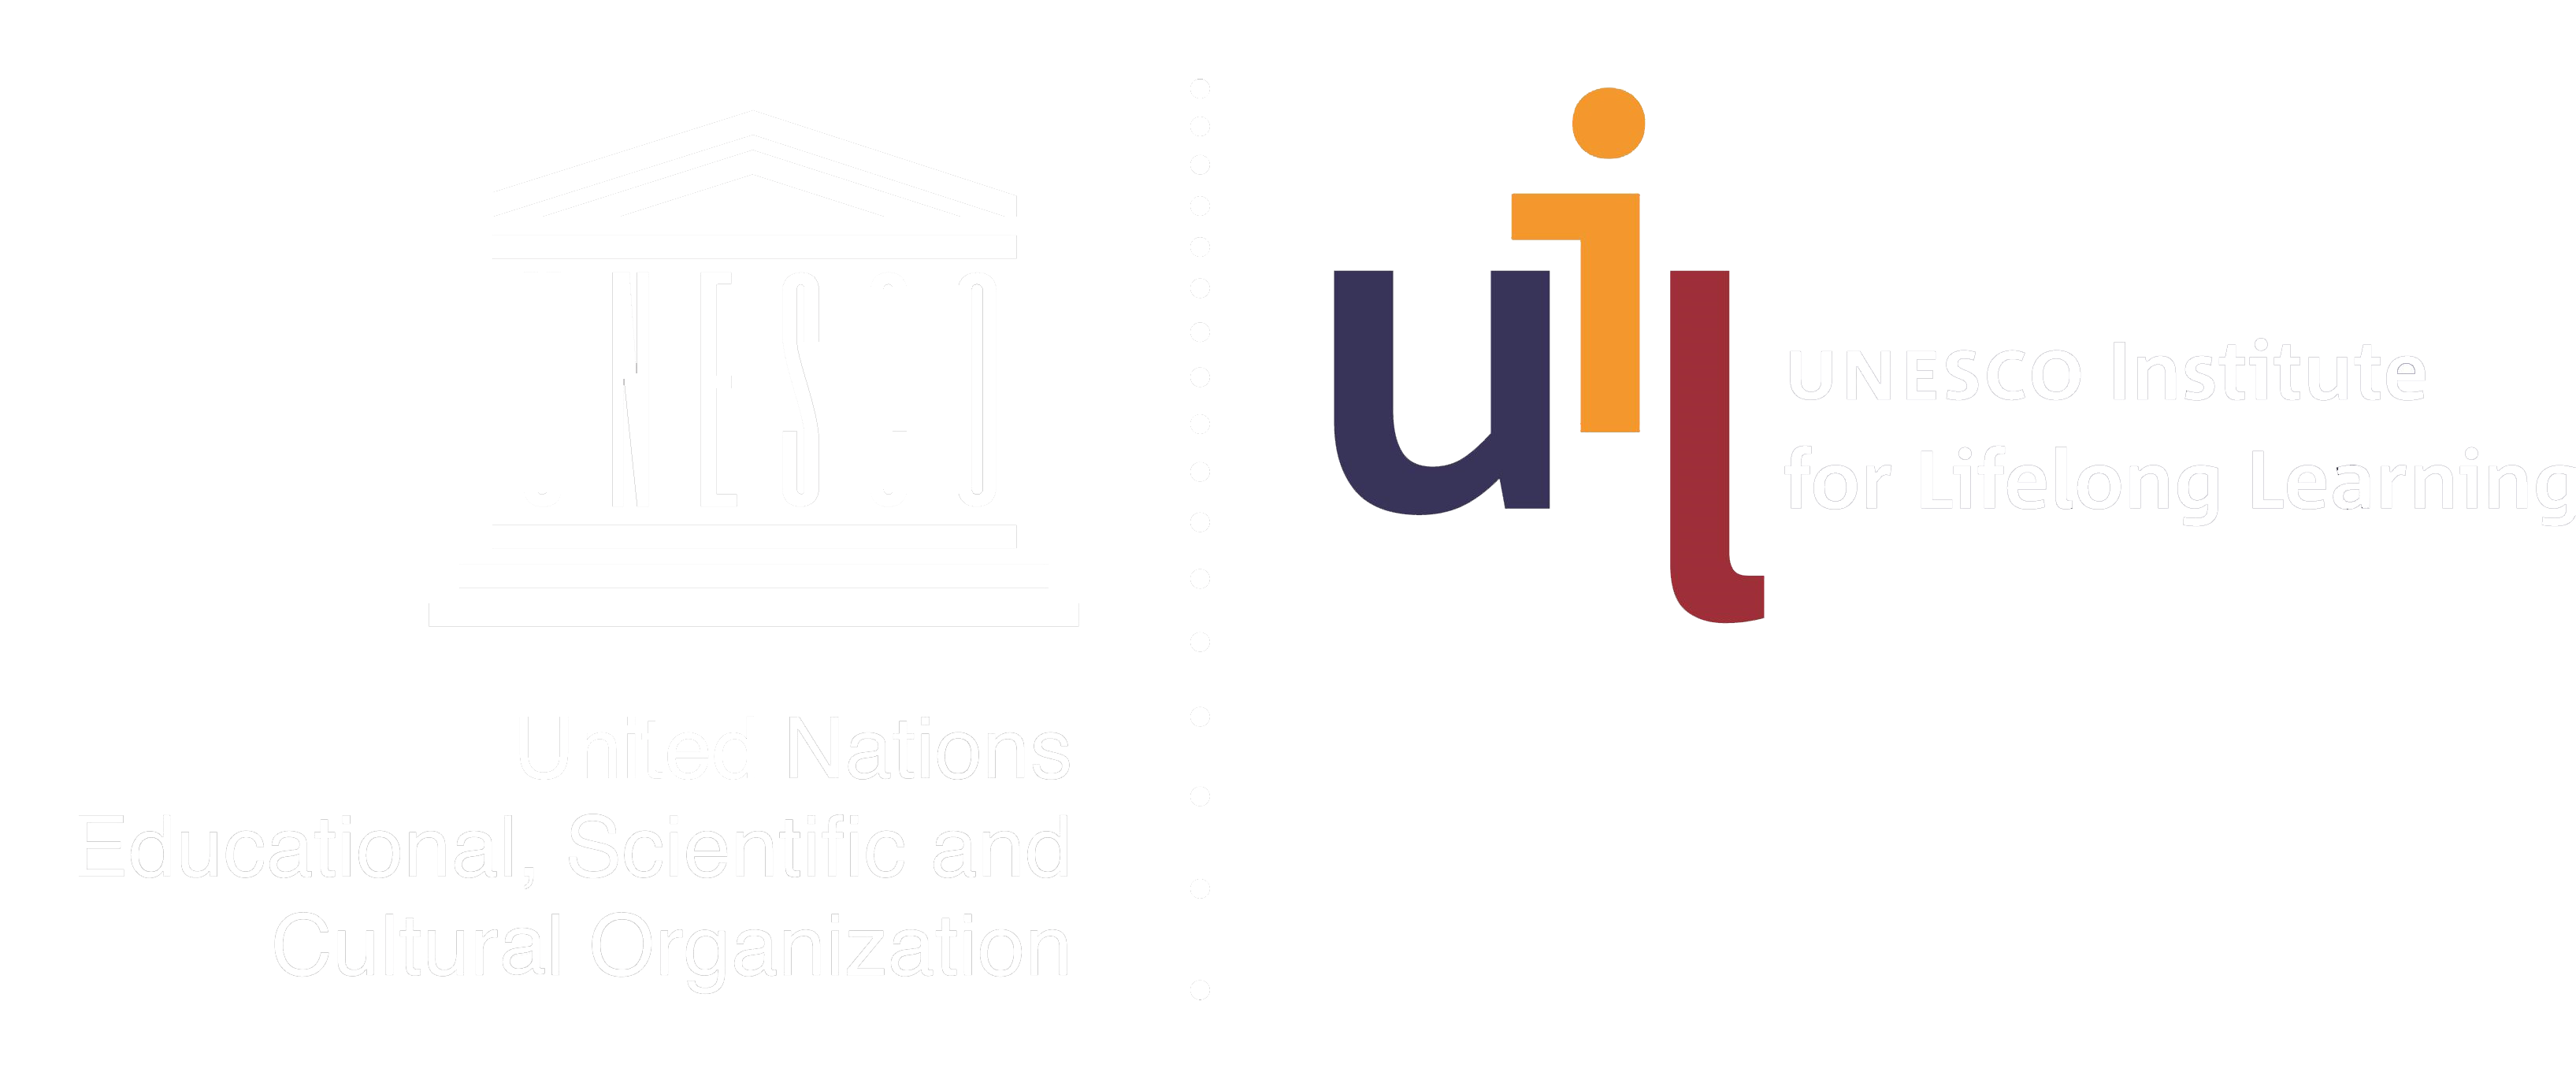 UNESCO Institute for Lifelong Learning